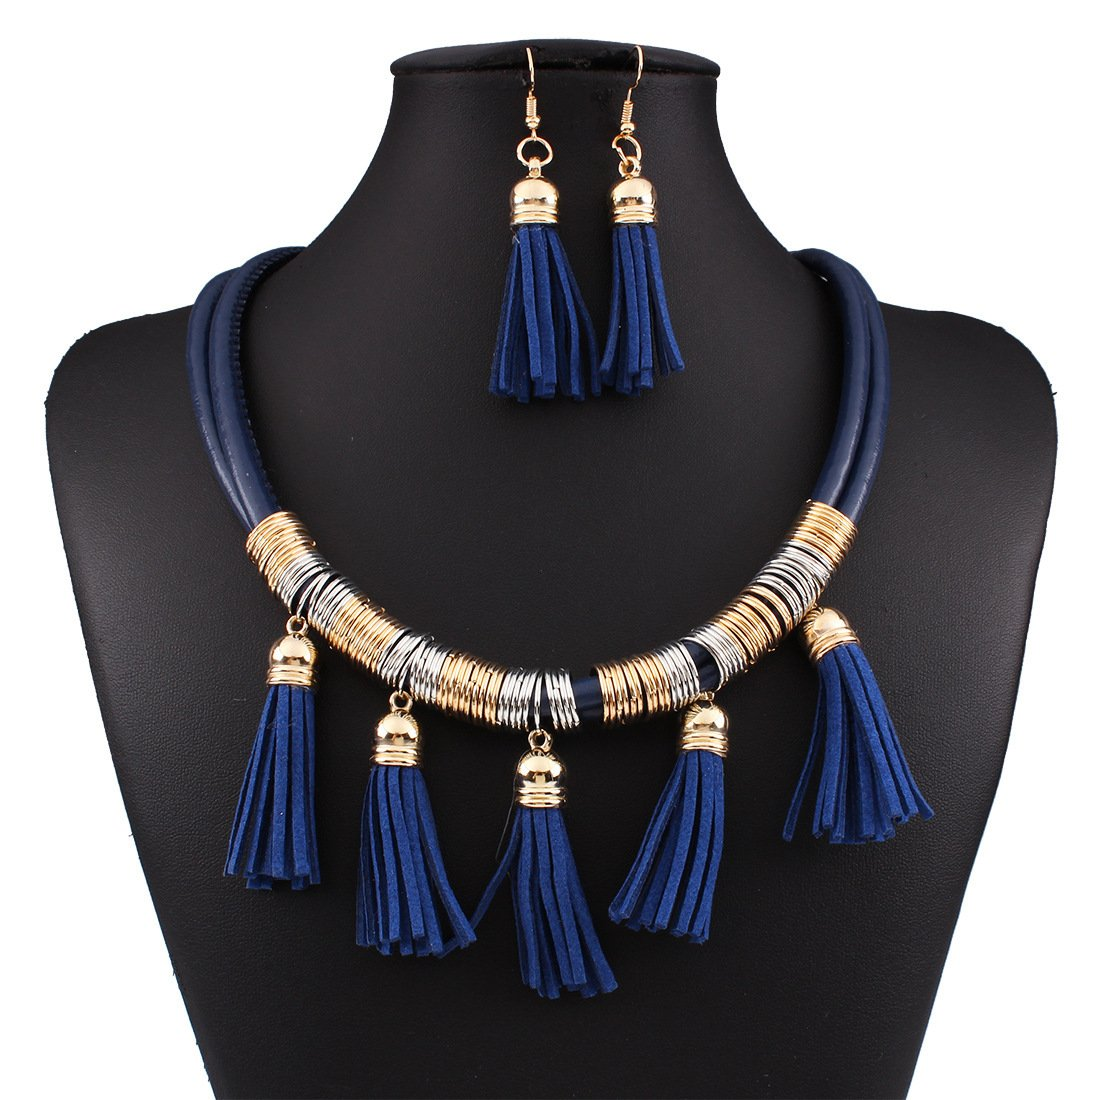 Kissweet Vintage Bohemian Tassel Necklace Earrings Set Multilayer Leather Necklace Fashion Jewelry Set